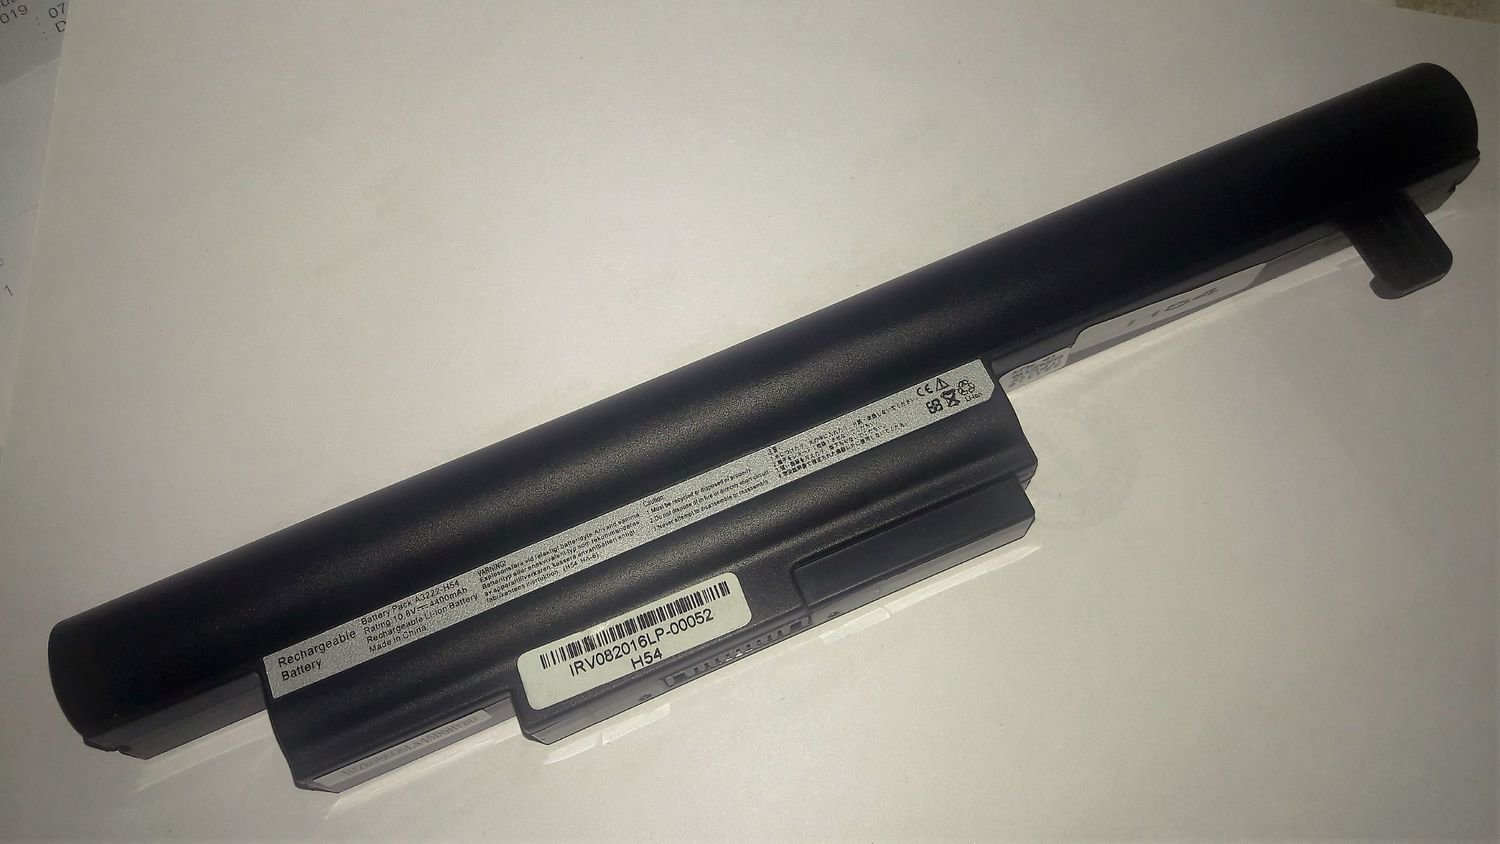 Asus A460 HCL A3222-H54 HCL ME 1024 Compatible Laptop Battery